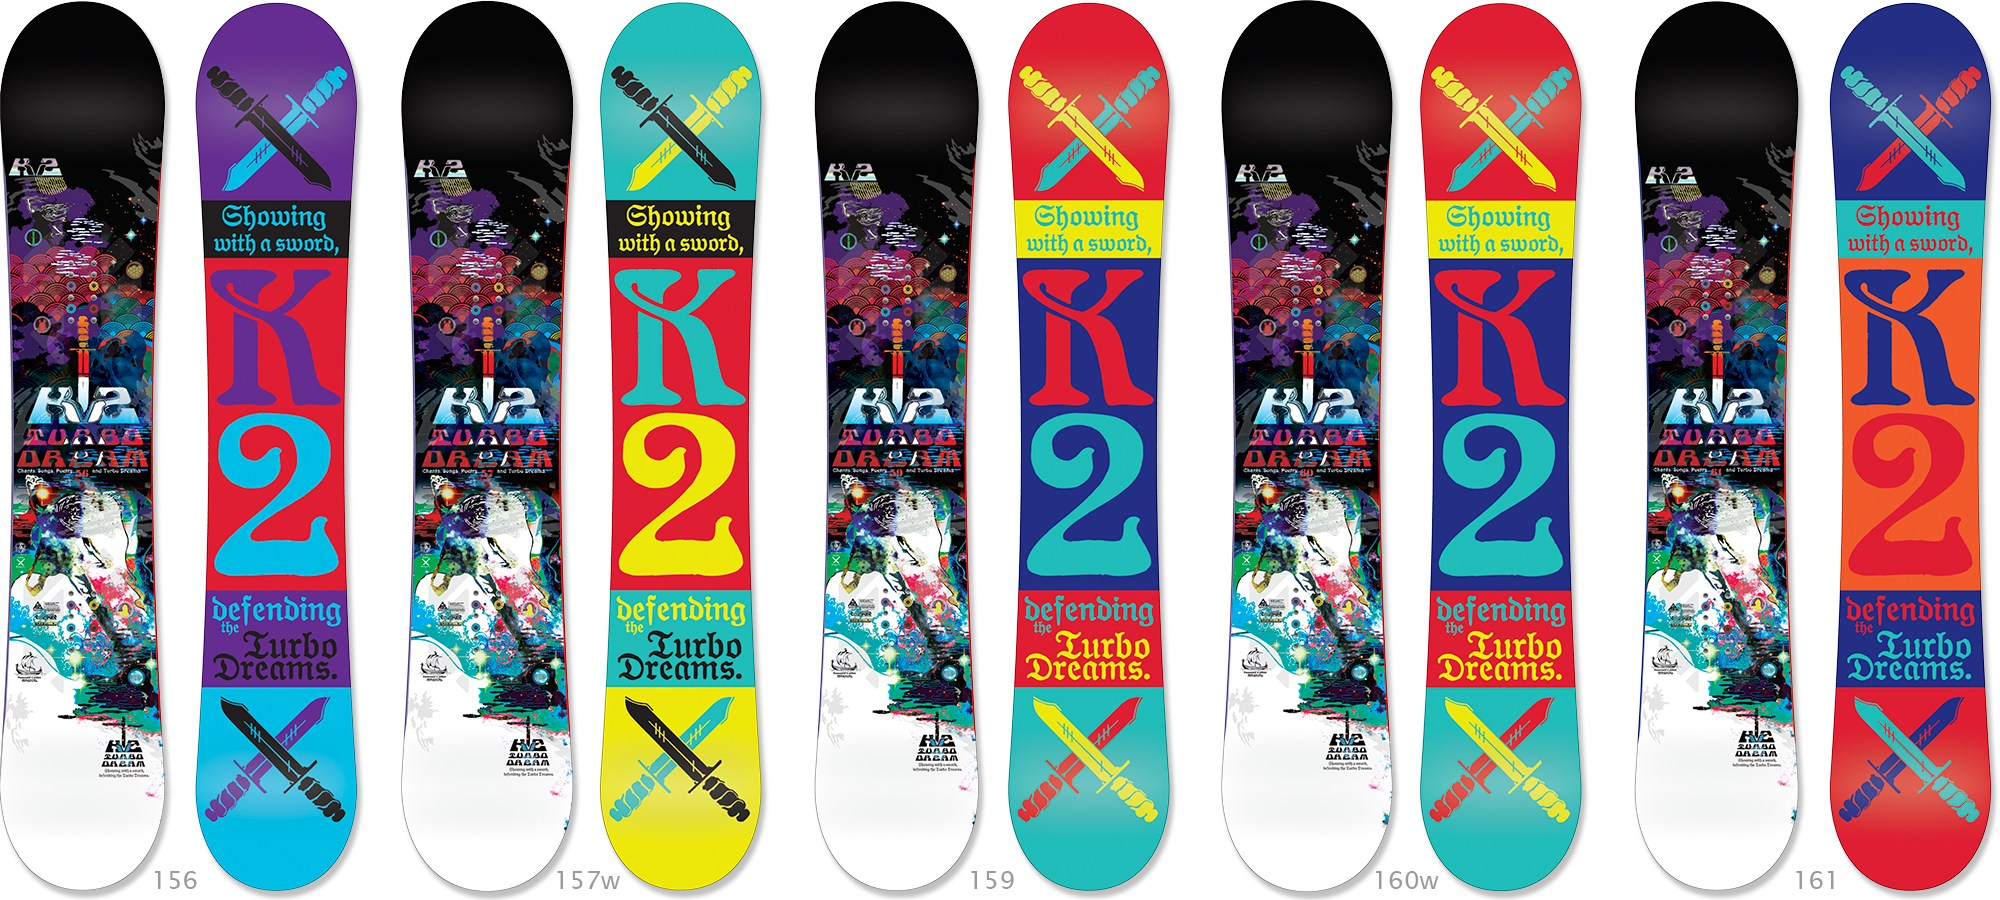 Snowboard K2 Turbo Dream Snowboard - 2012/2013